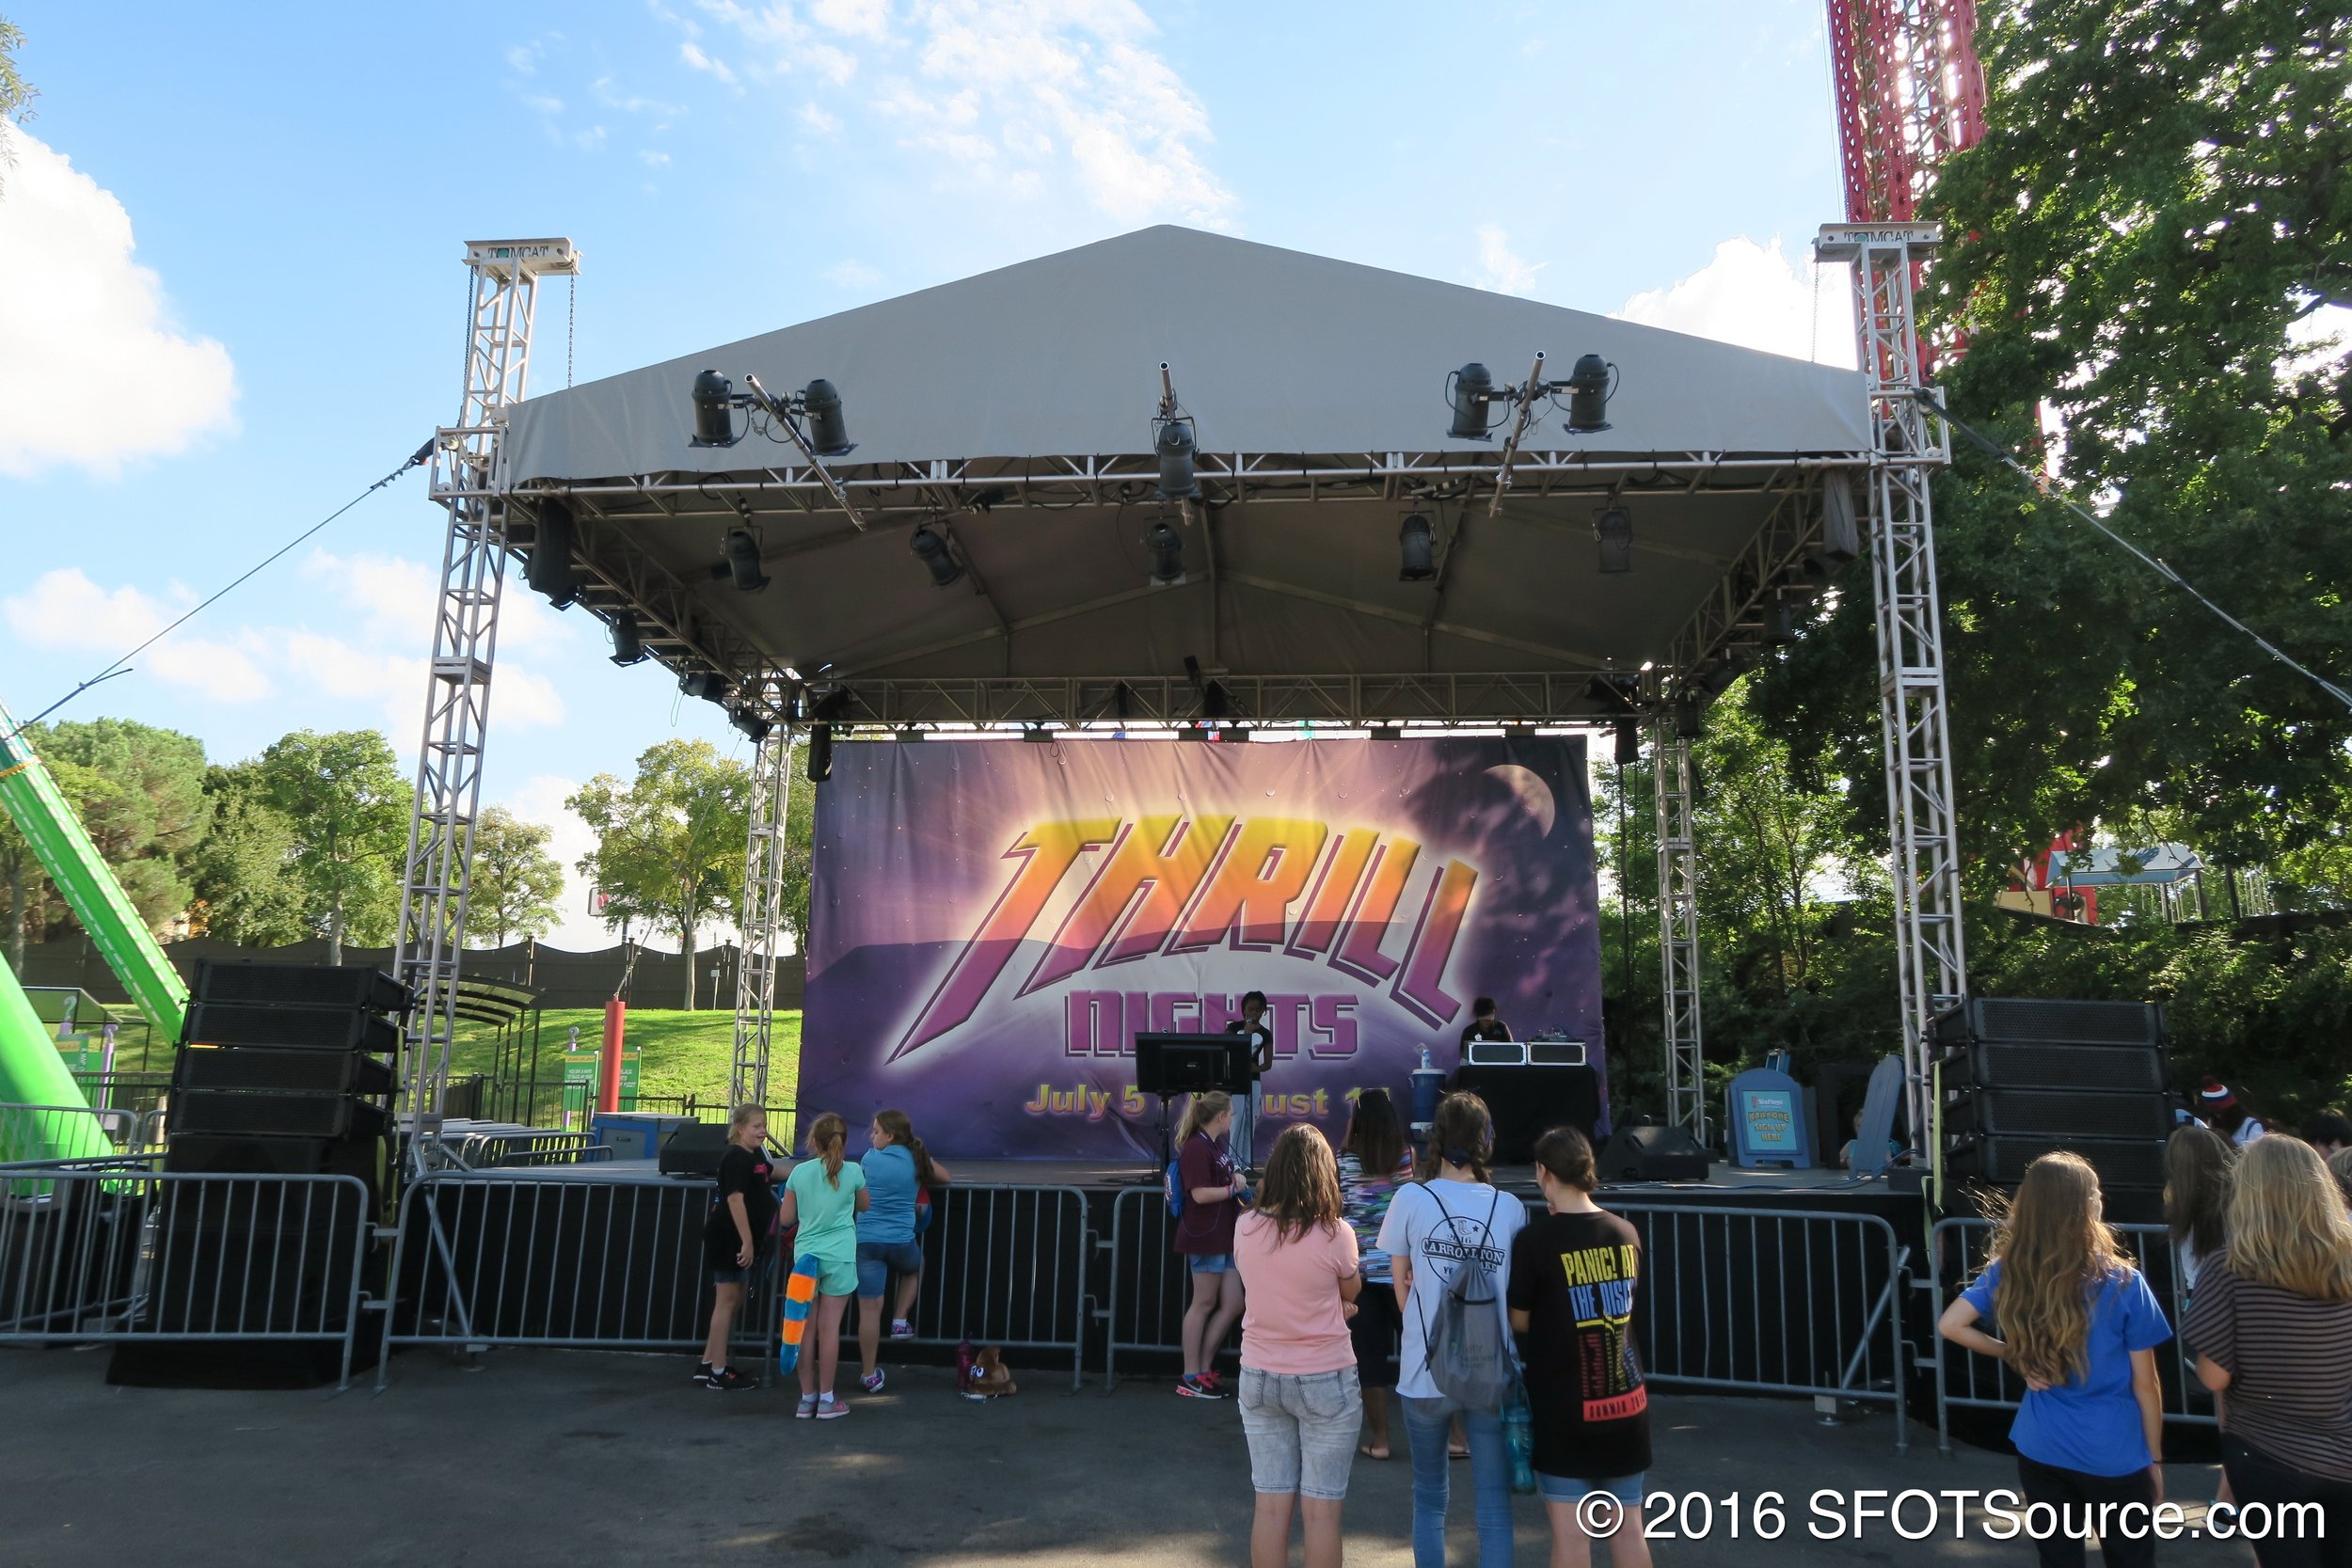 An outdoor stage located in the park's Gotham City section.